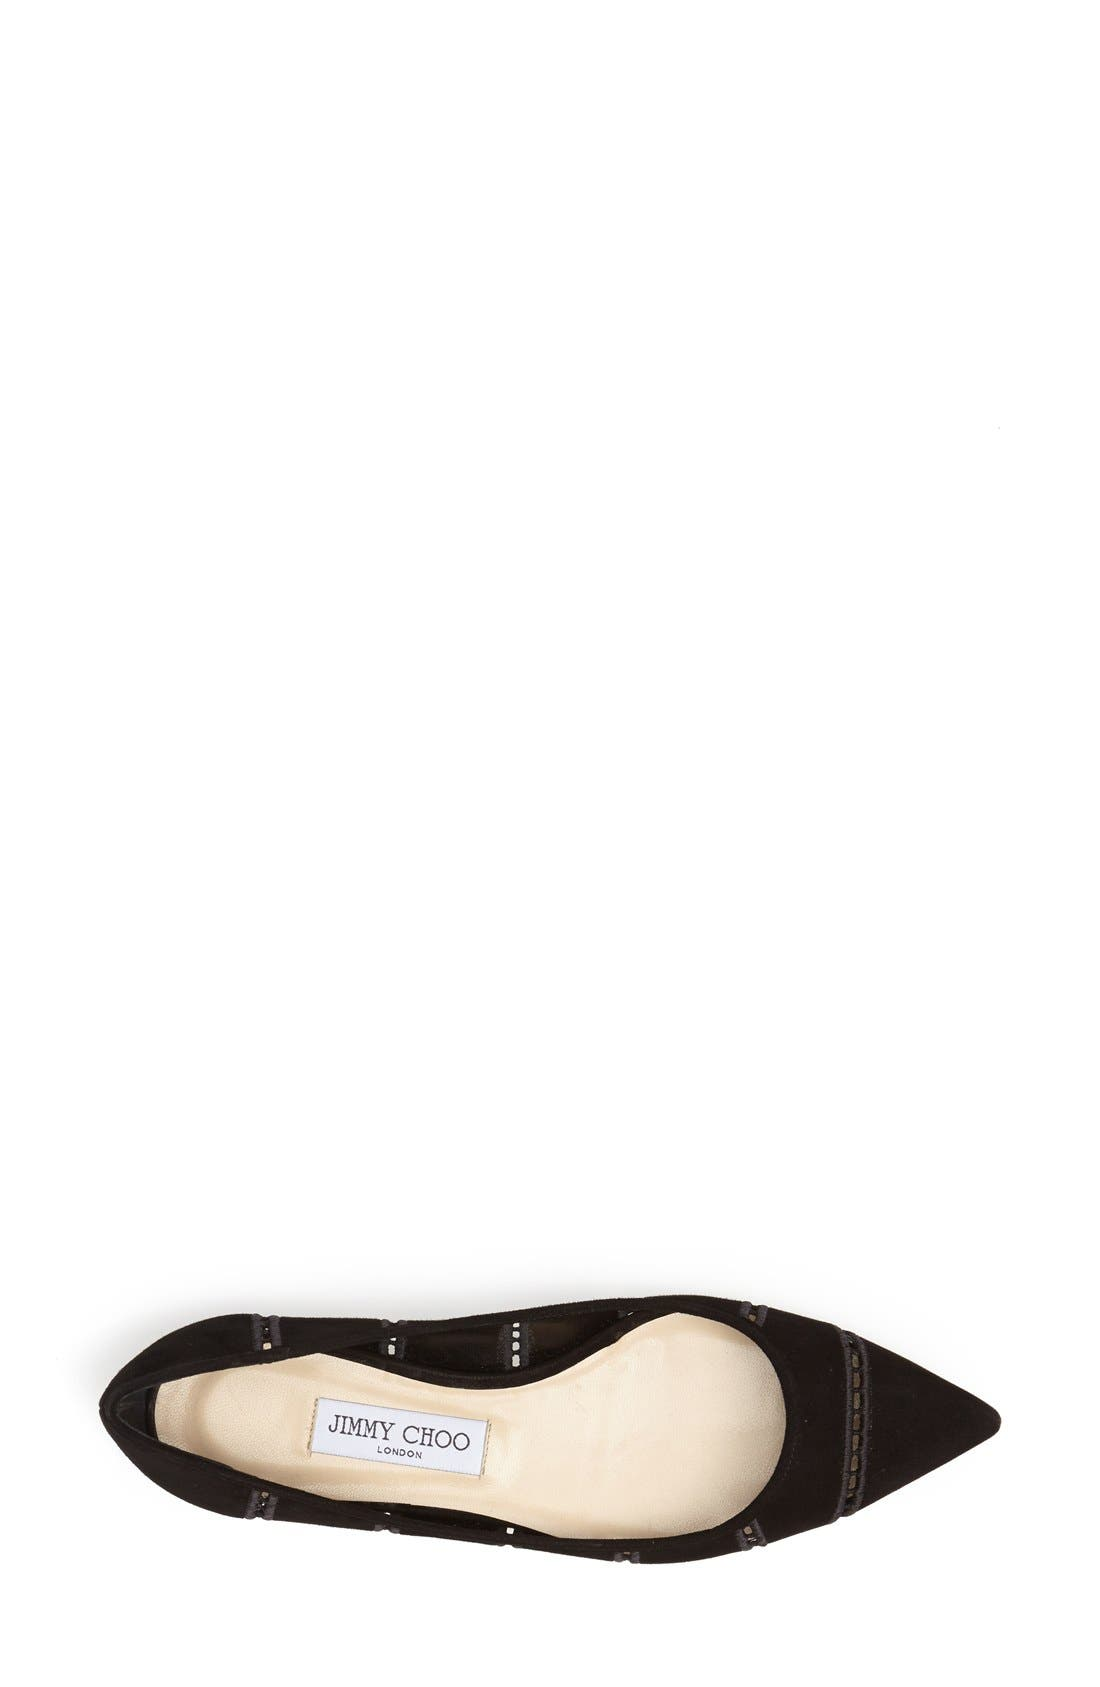 Alternate Image 3  - Jimmy Choo 'Alina' Pointy Toe Perforated Broderie Anglaise Suede Flat (Women)